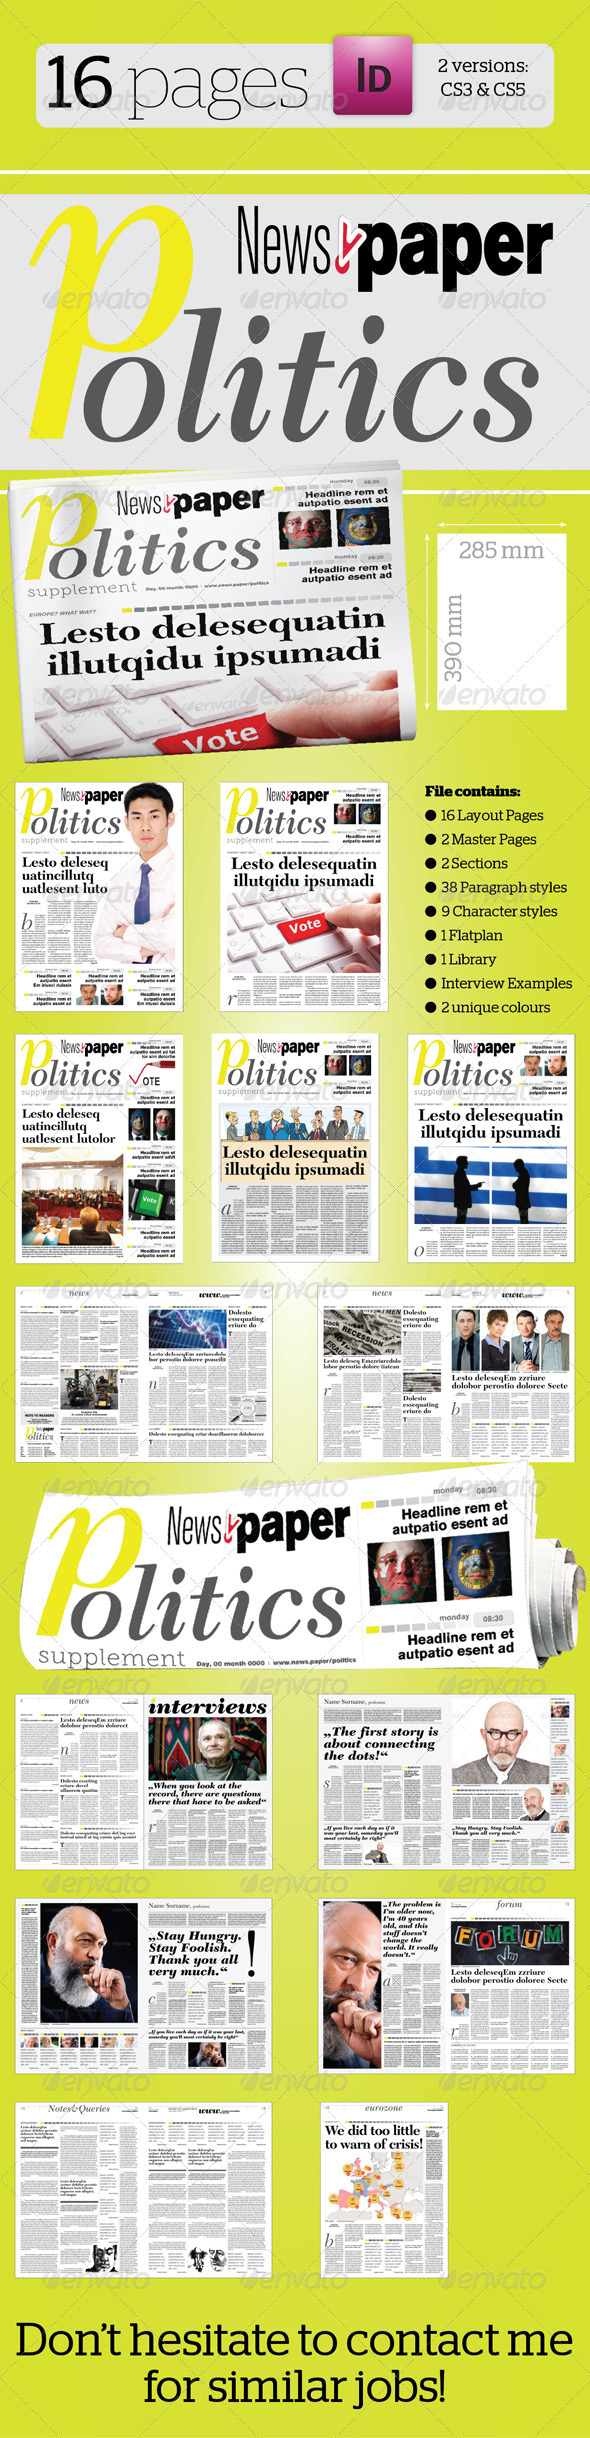 16 Pages Politics Supplement For News.Paper - Newsletters Print Templates